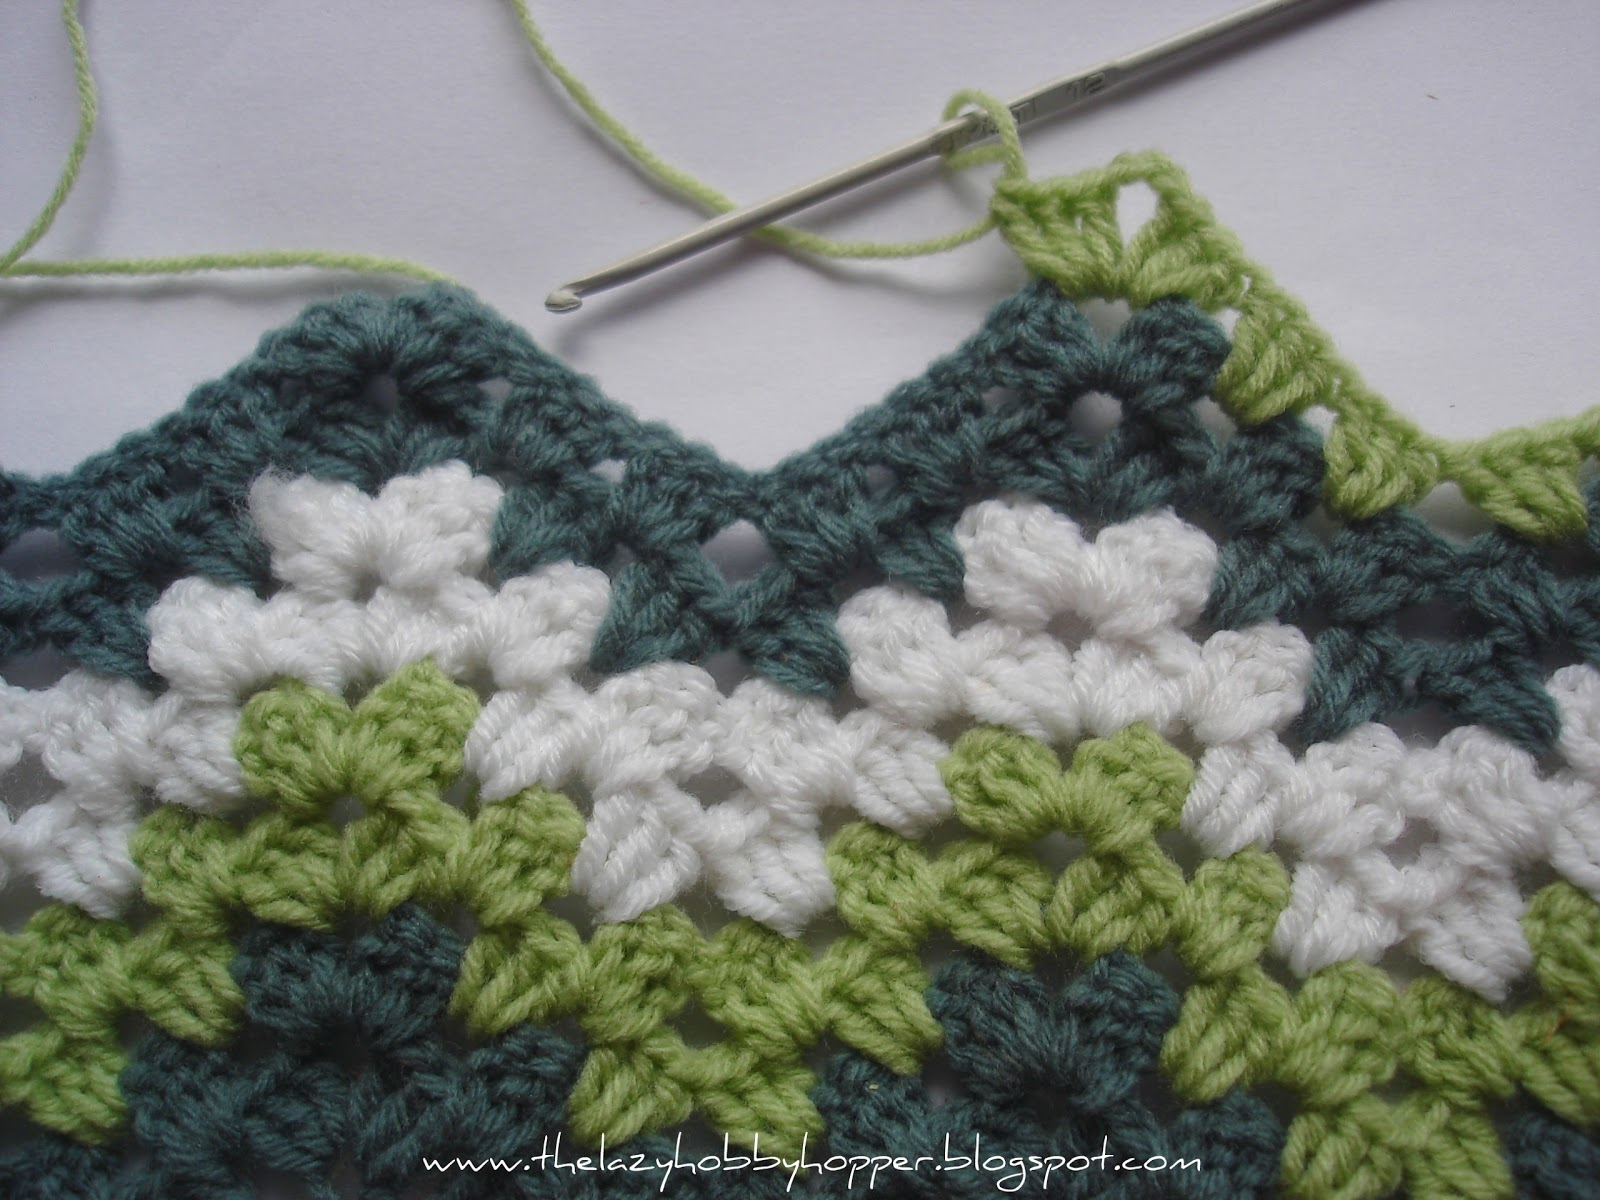 Crocheting Videos : ... many of you who can crochet fairly well may not know how to crochet a